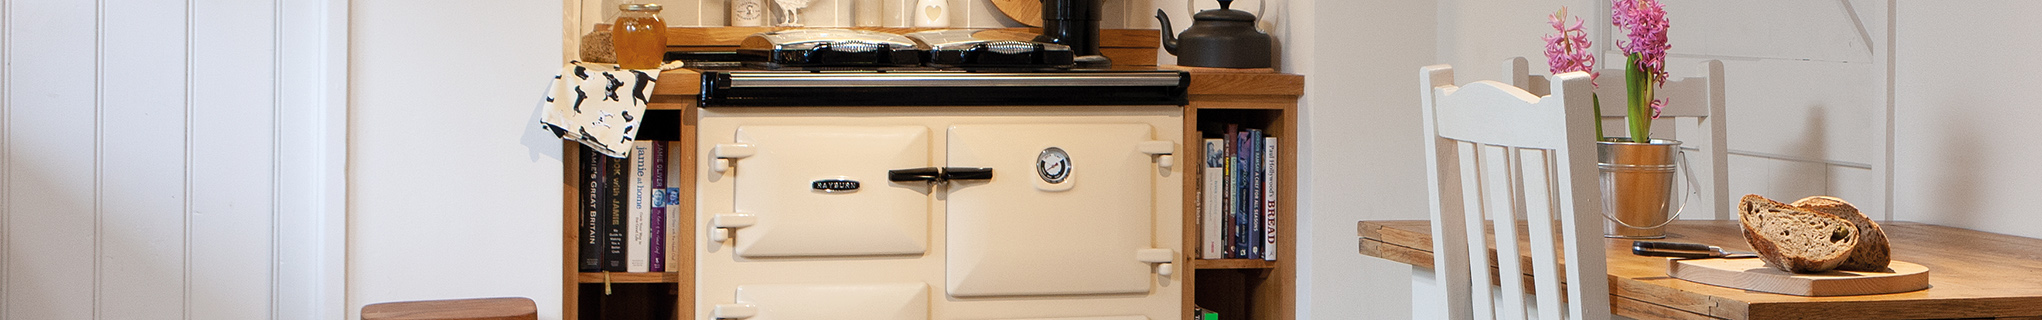 Rayburn cast iron cookers